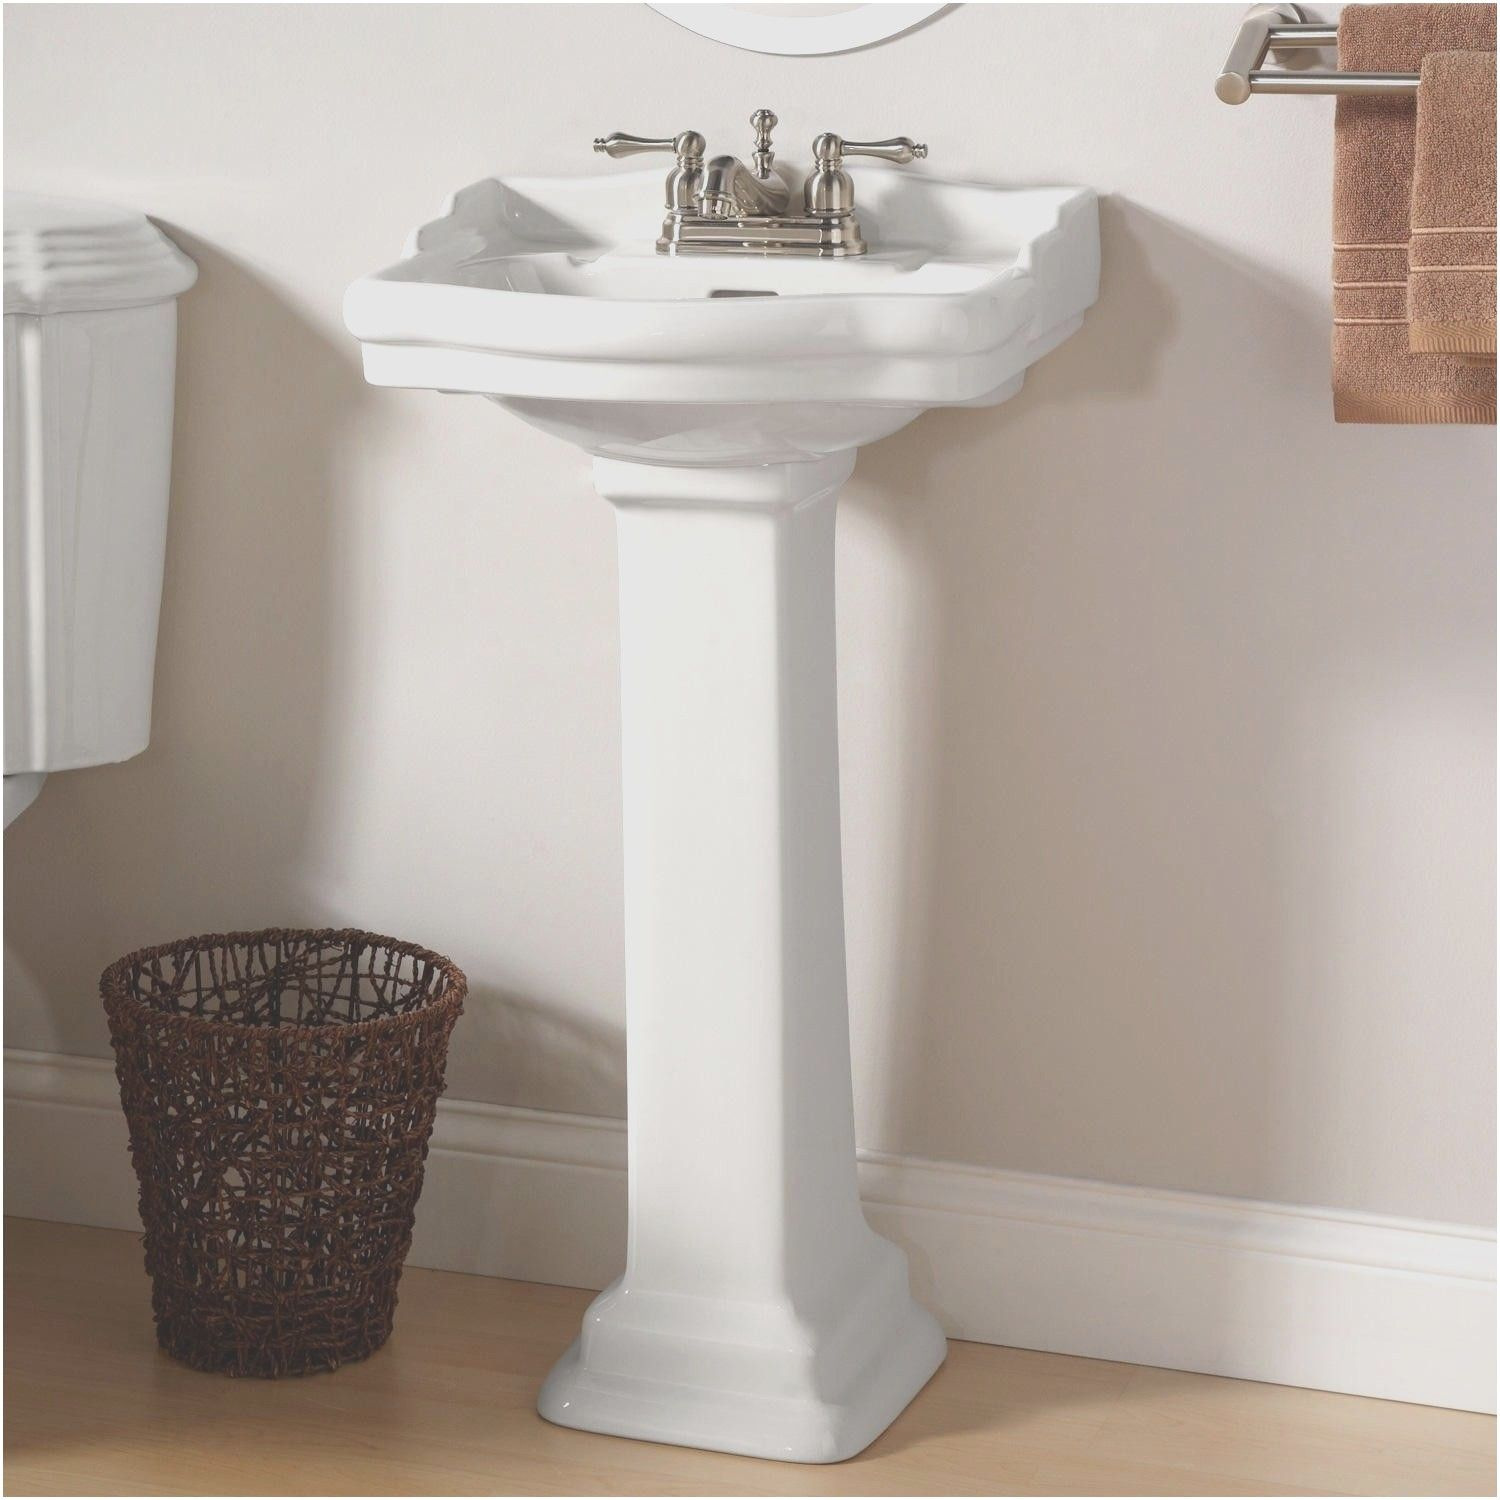 Small Bathroom with Pedestal Sink Ideas Best Stunning 511 20 Wh 1 Lgh Sink Cheviot Small Mayfair Pedestal 1i 0d You Gonna Love